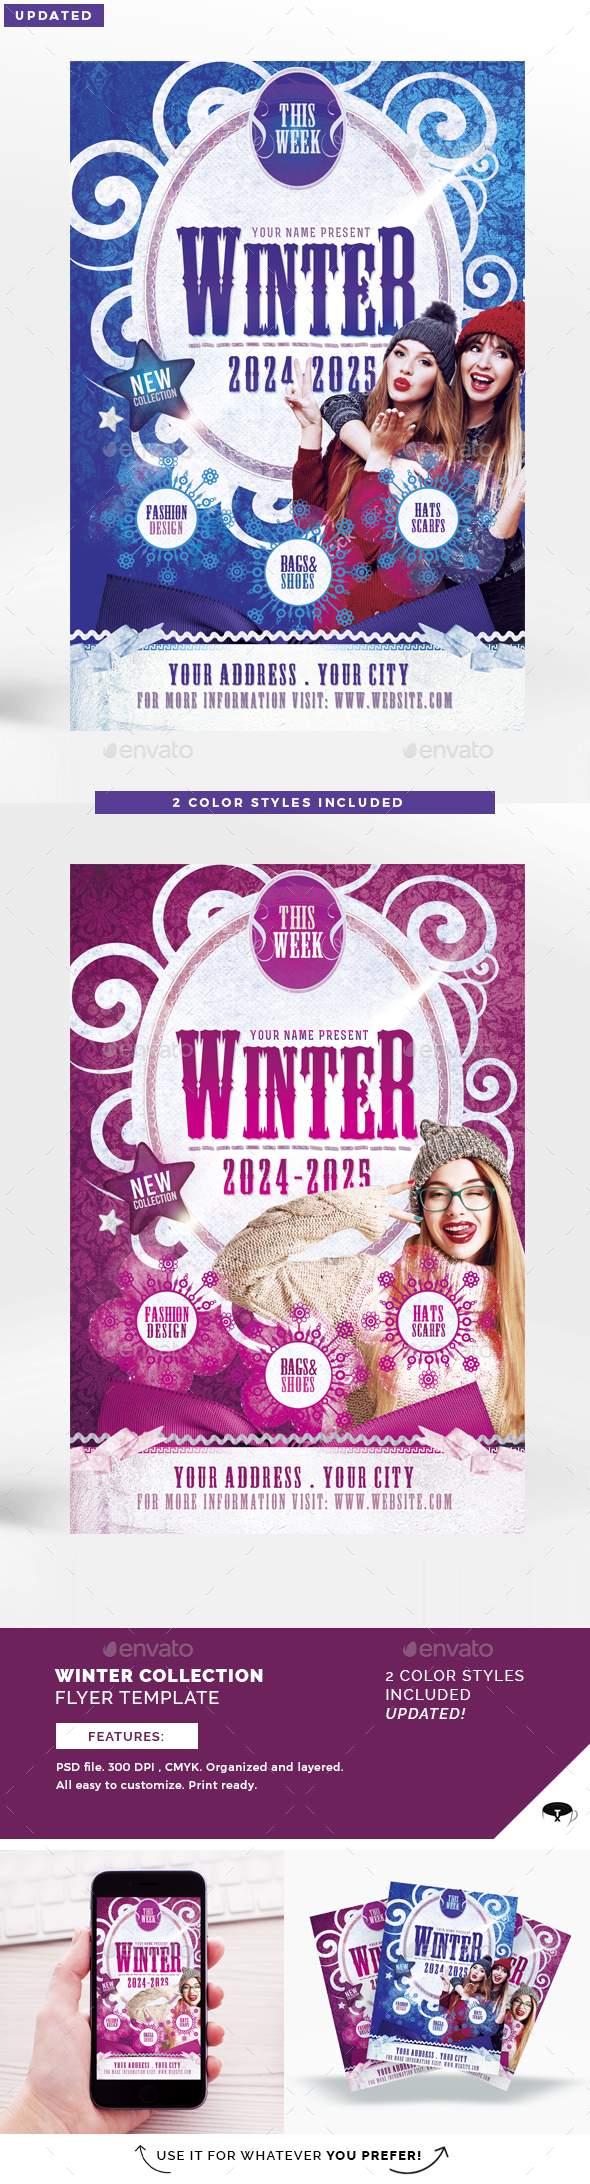 Winter Collection Flyer Template - Commerce Flyers